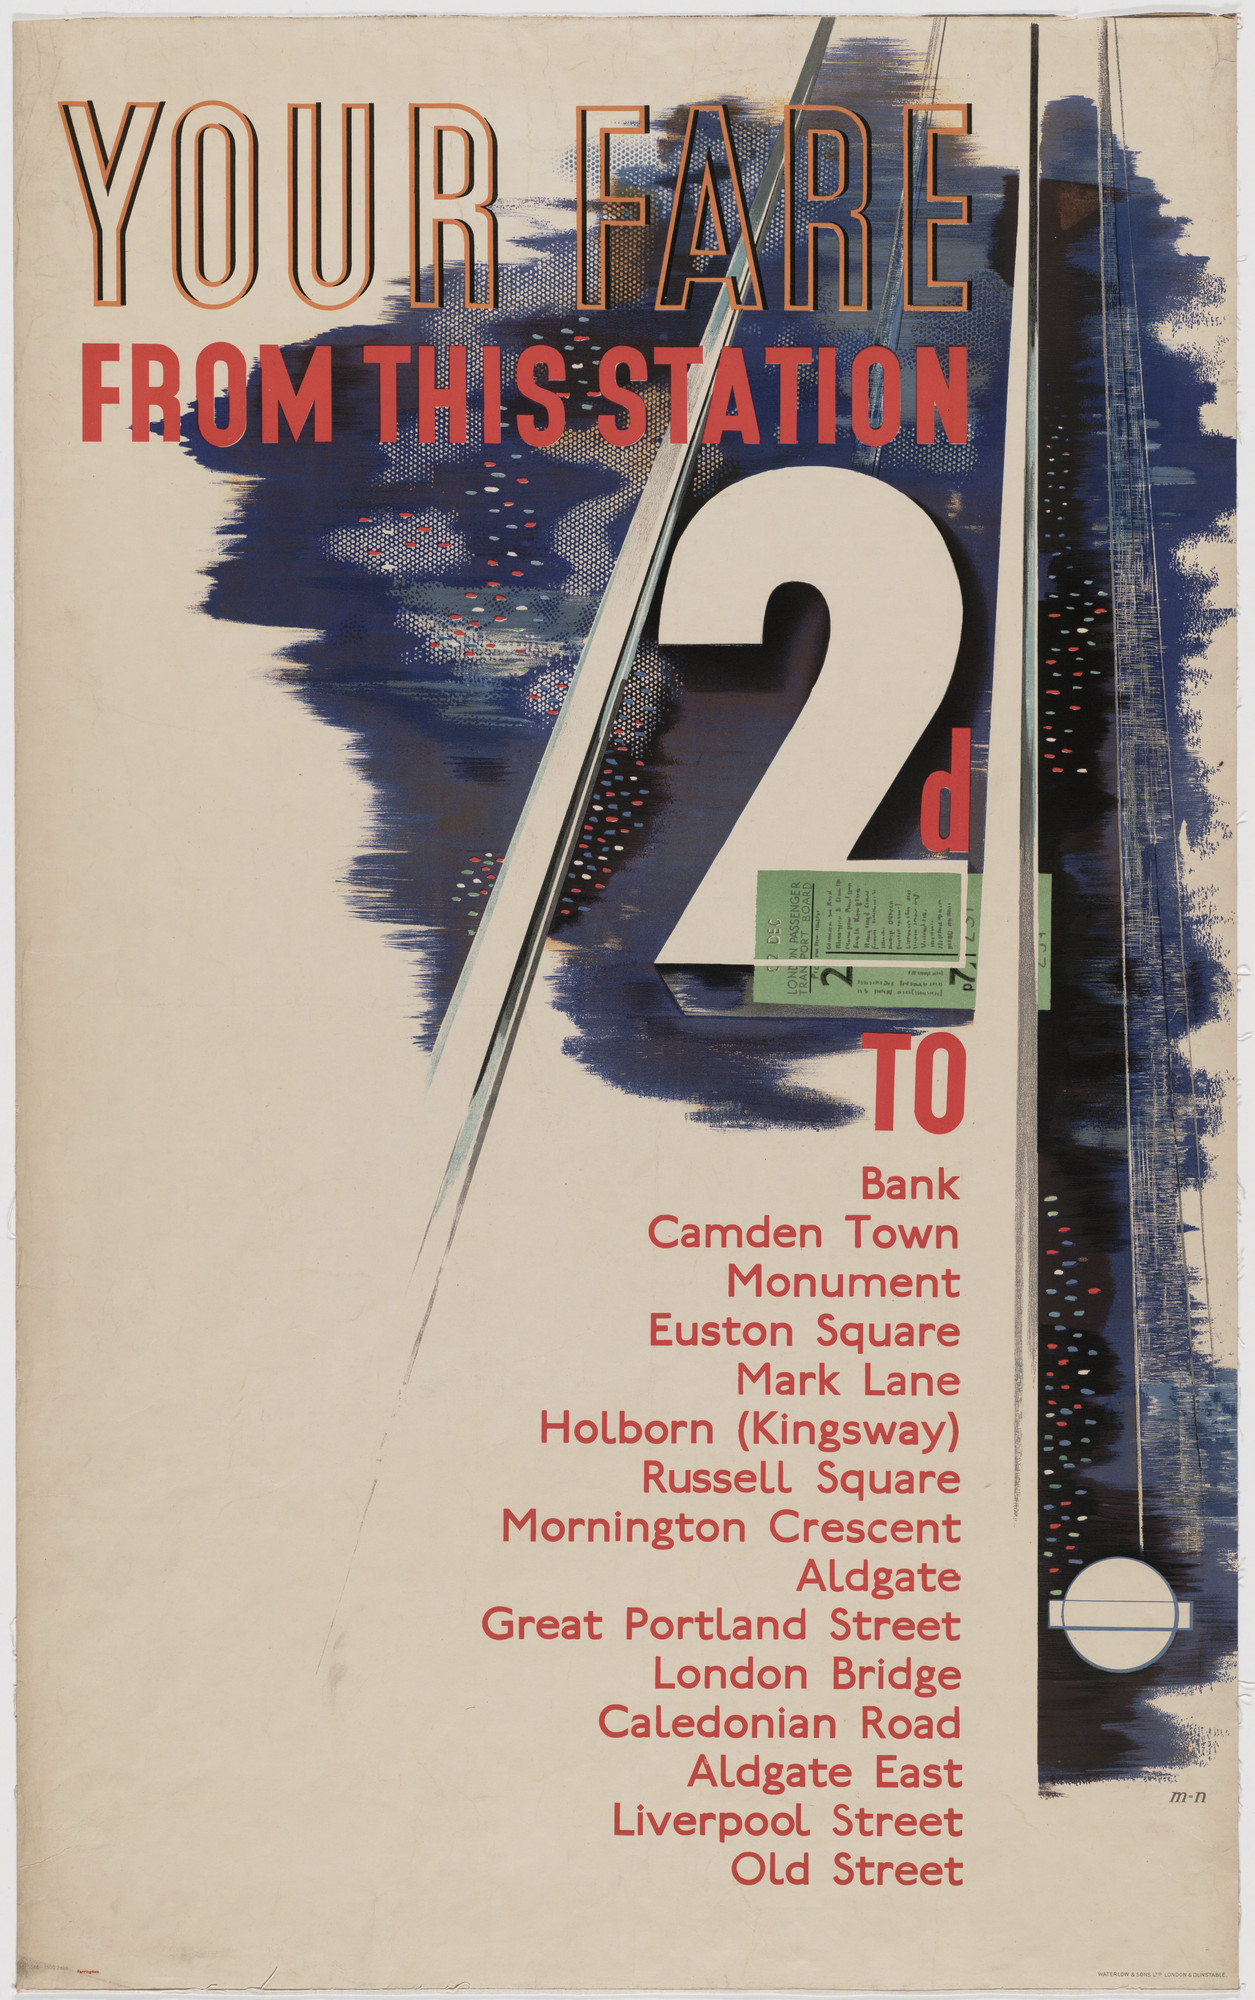 László Moholy-Nagy. Your Fare From This Station (Poster for London Transport). 1936